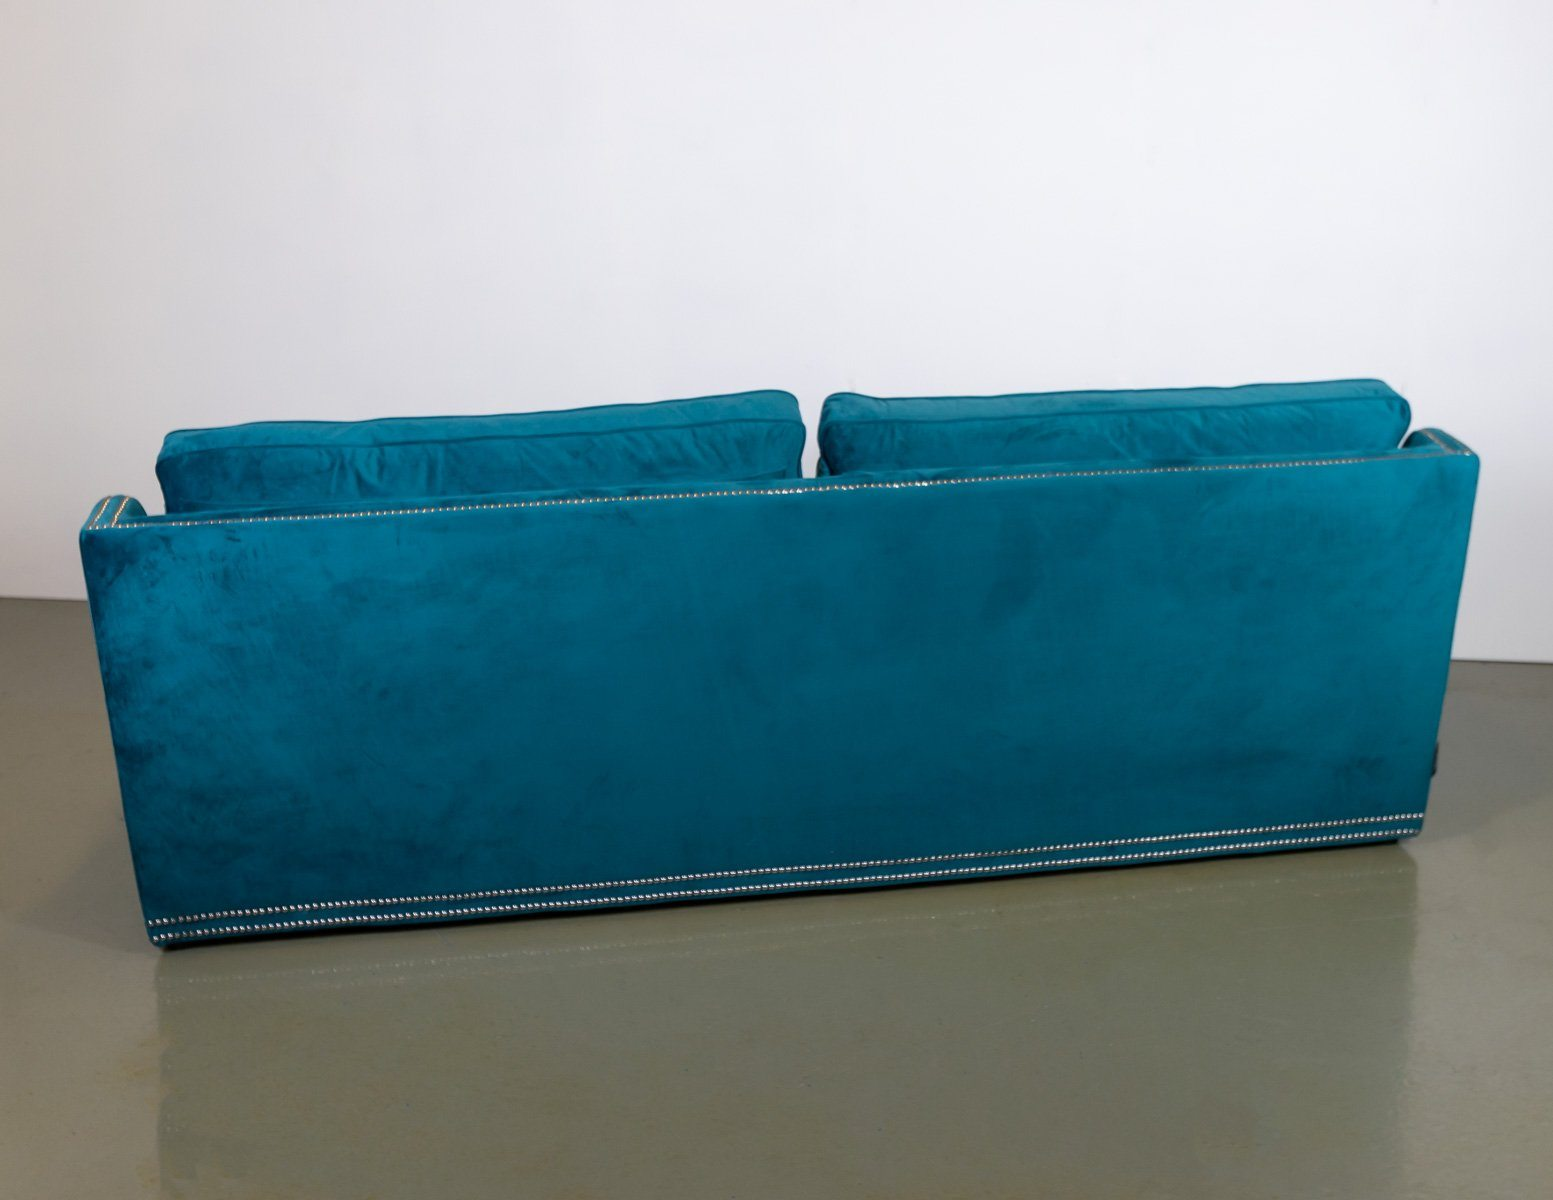 Sofa - Brand New Coach House Pratt Teal 3 Seater Studded Sofa